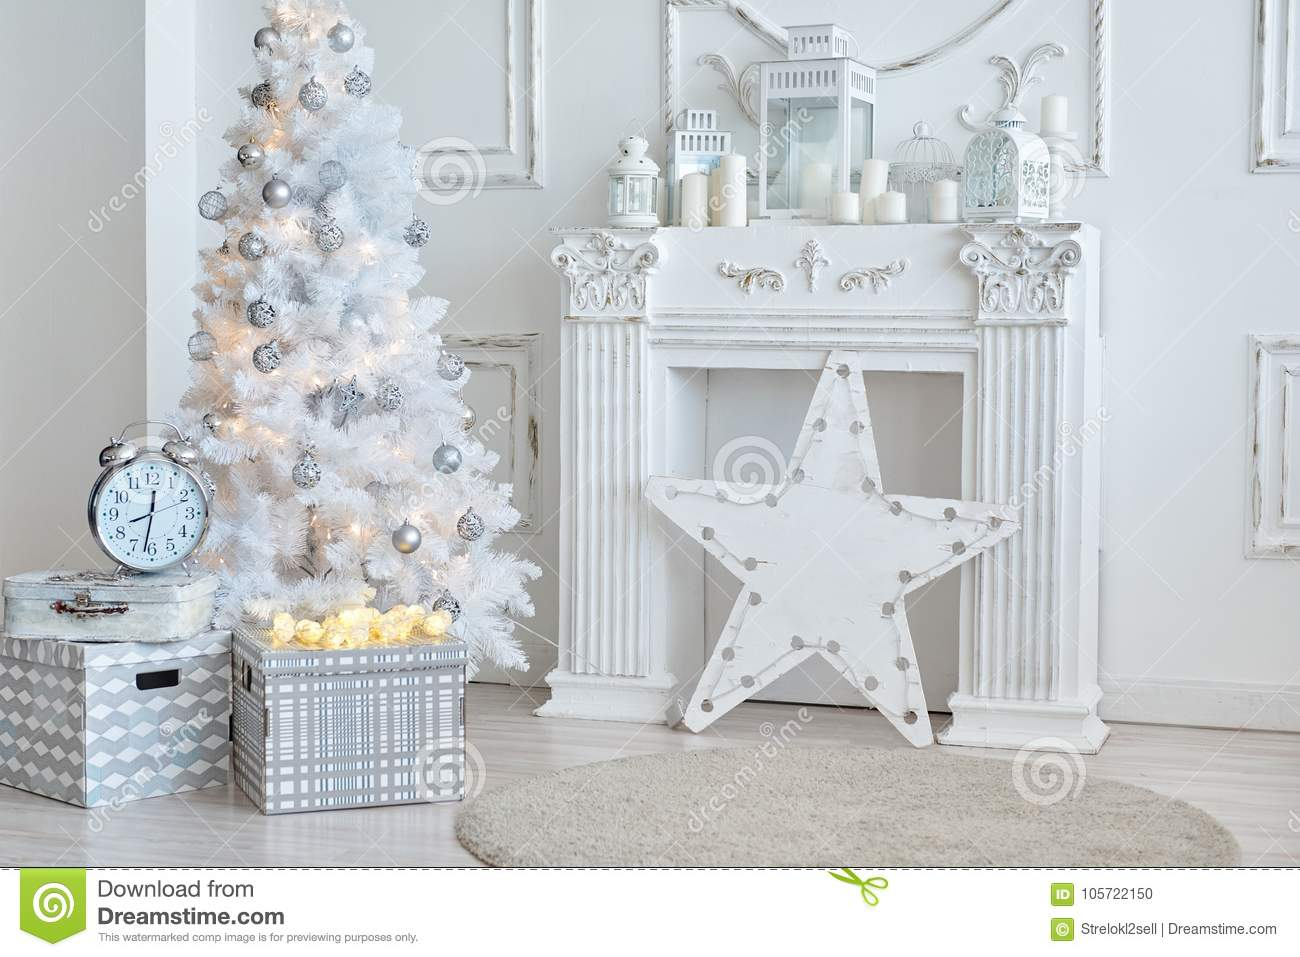 White Christmas Decorations In Studio Stock Photo - Image of ...